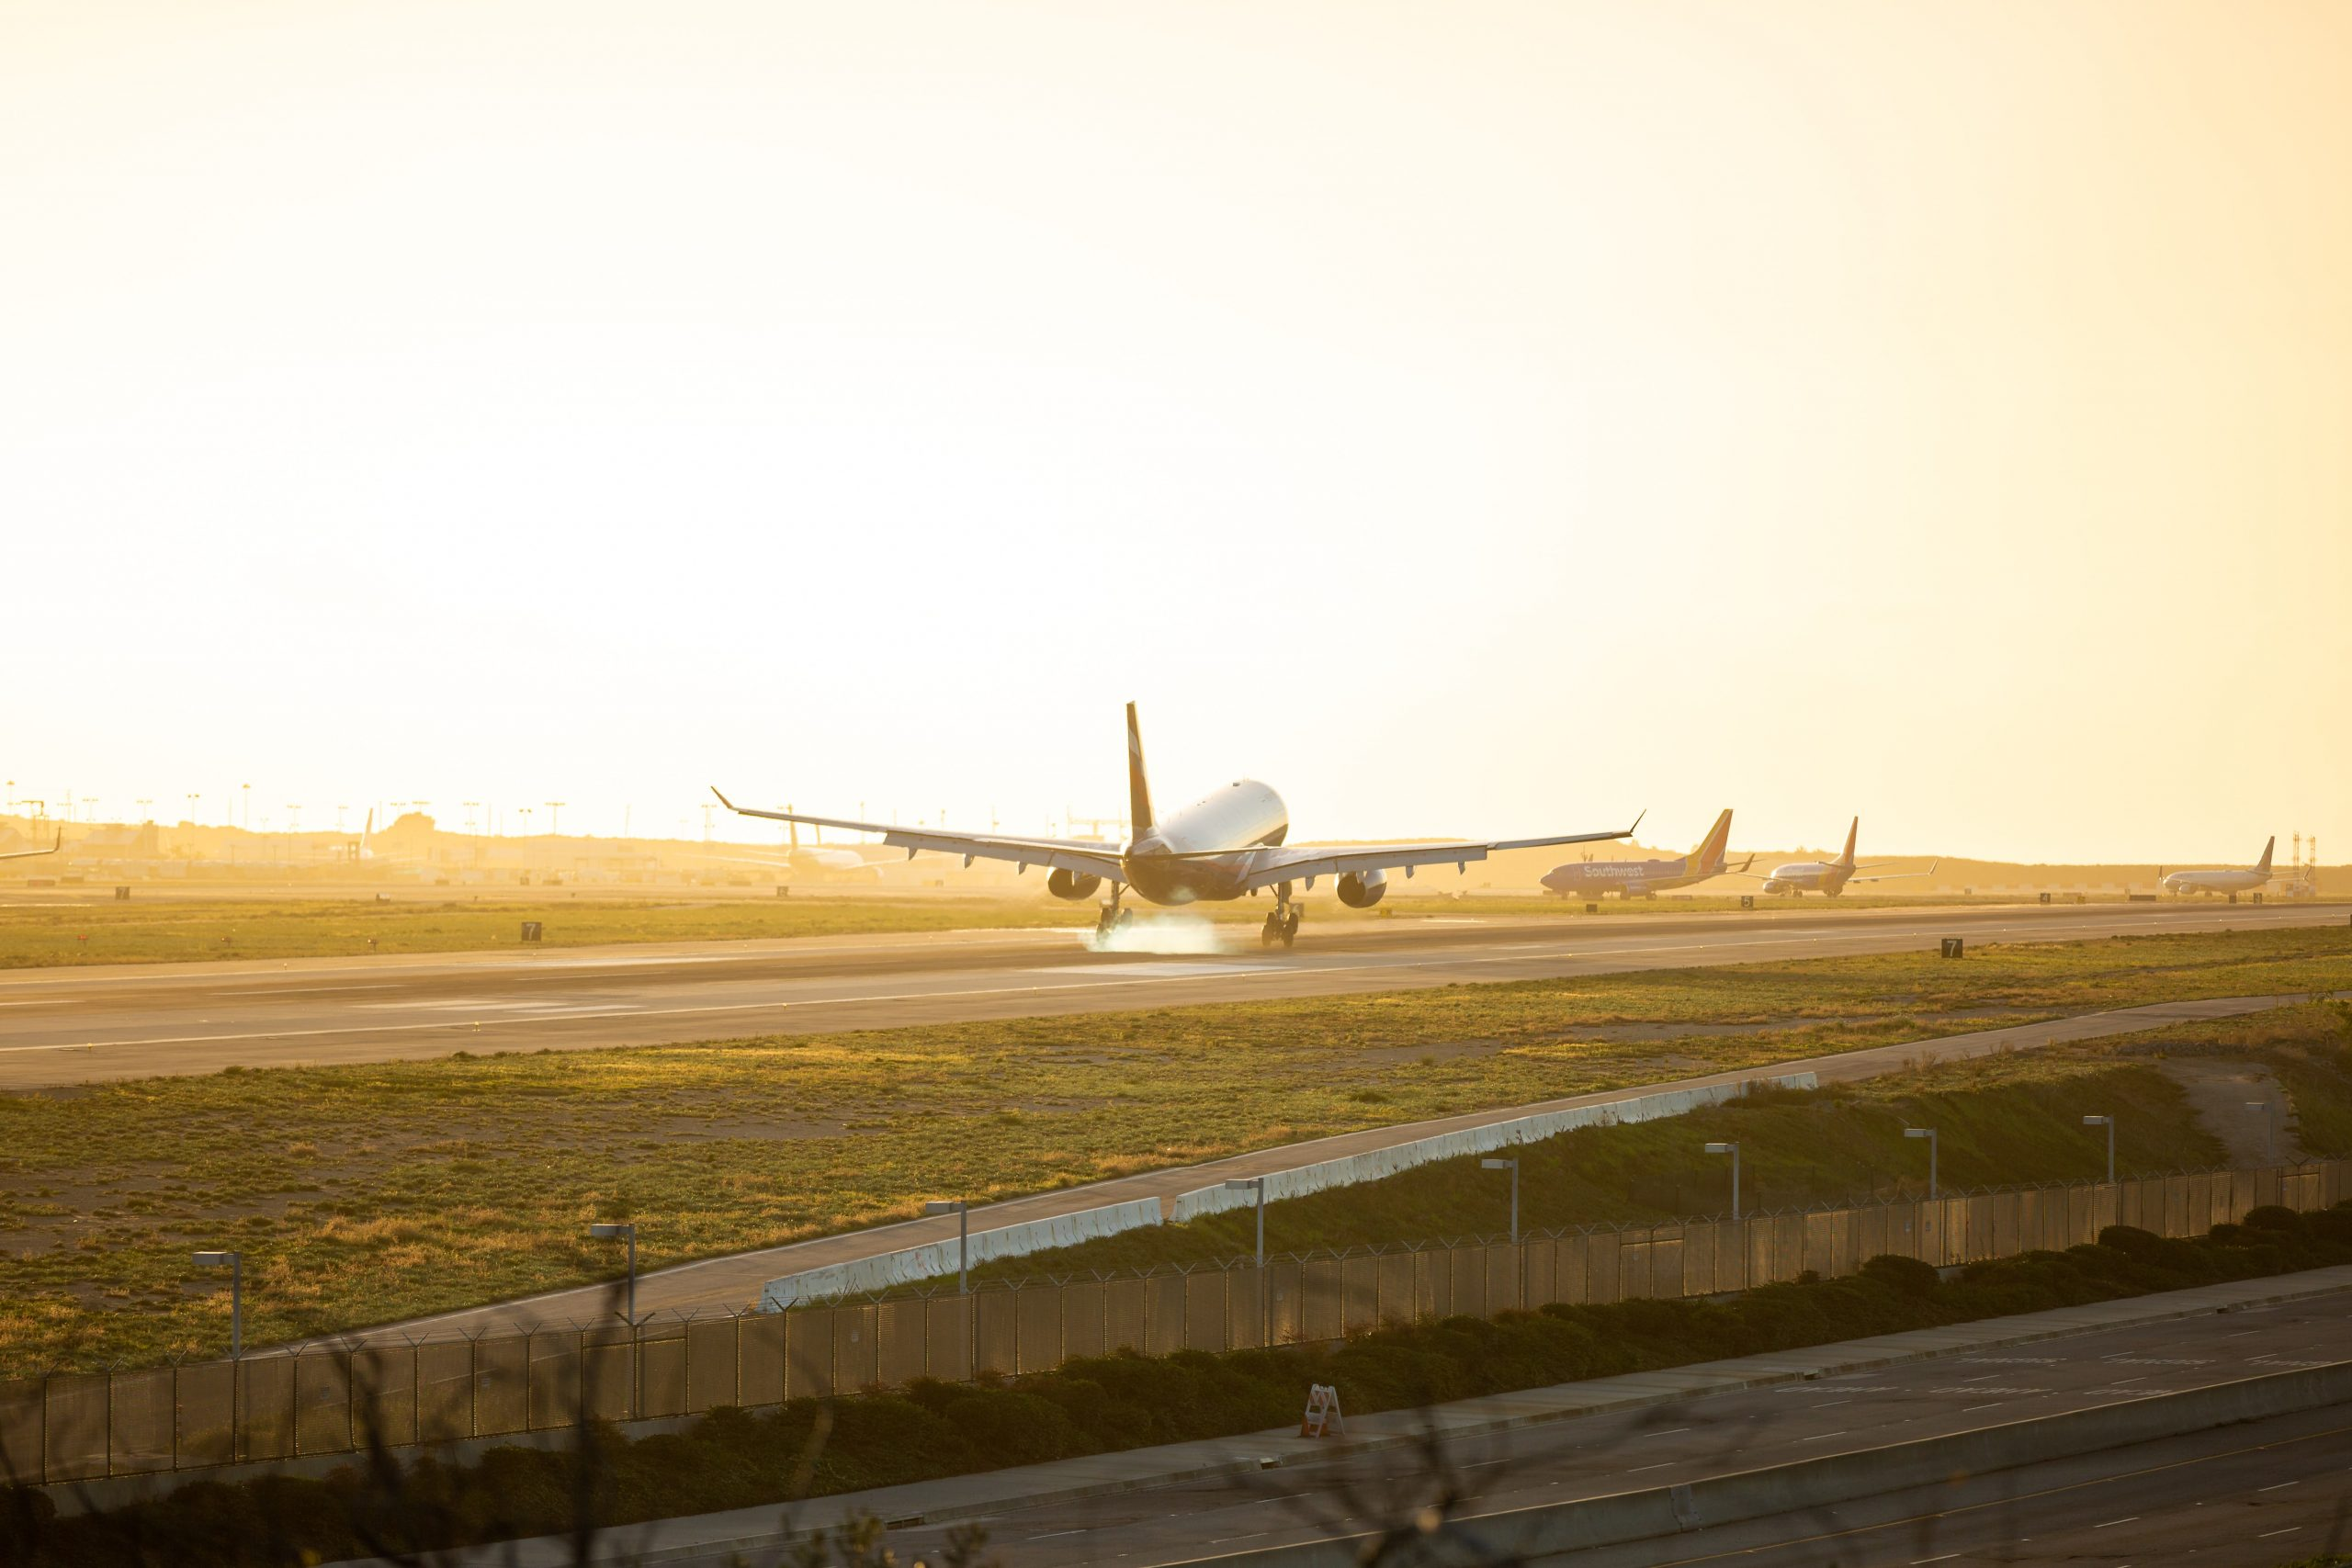 Photo of an airplane waiting to take off on the runway.